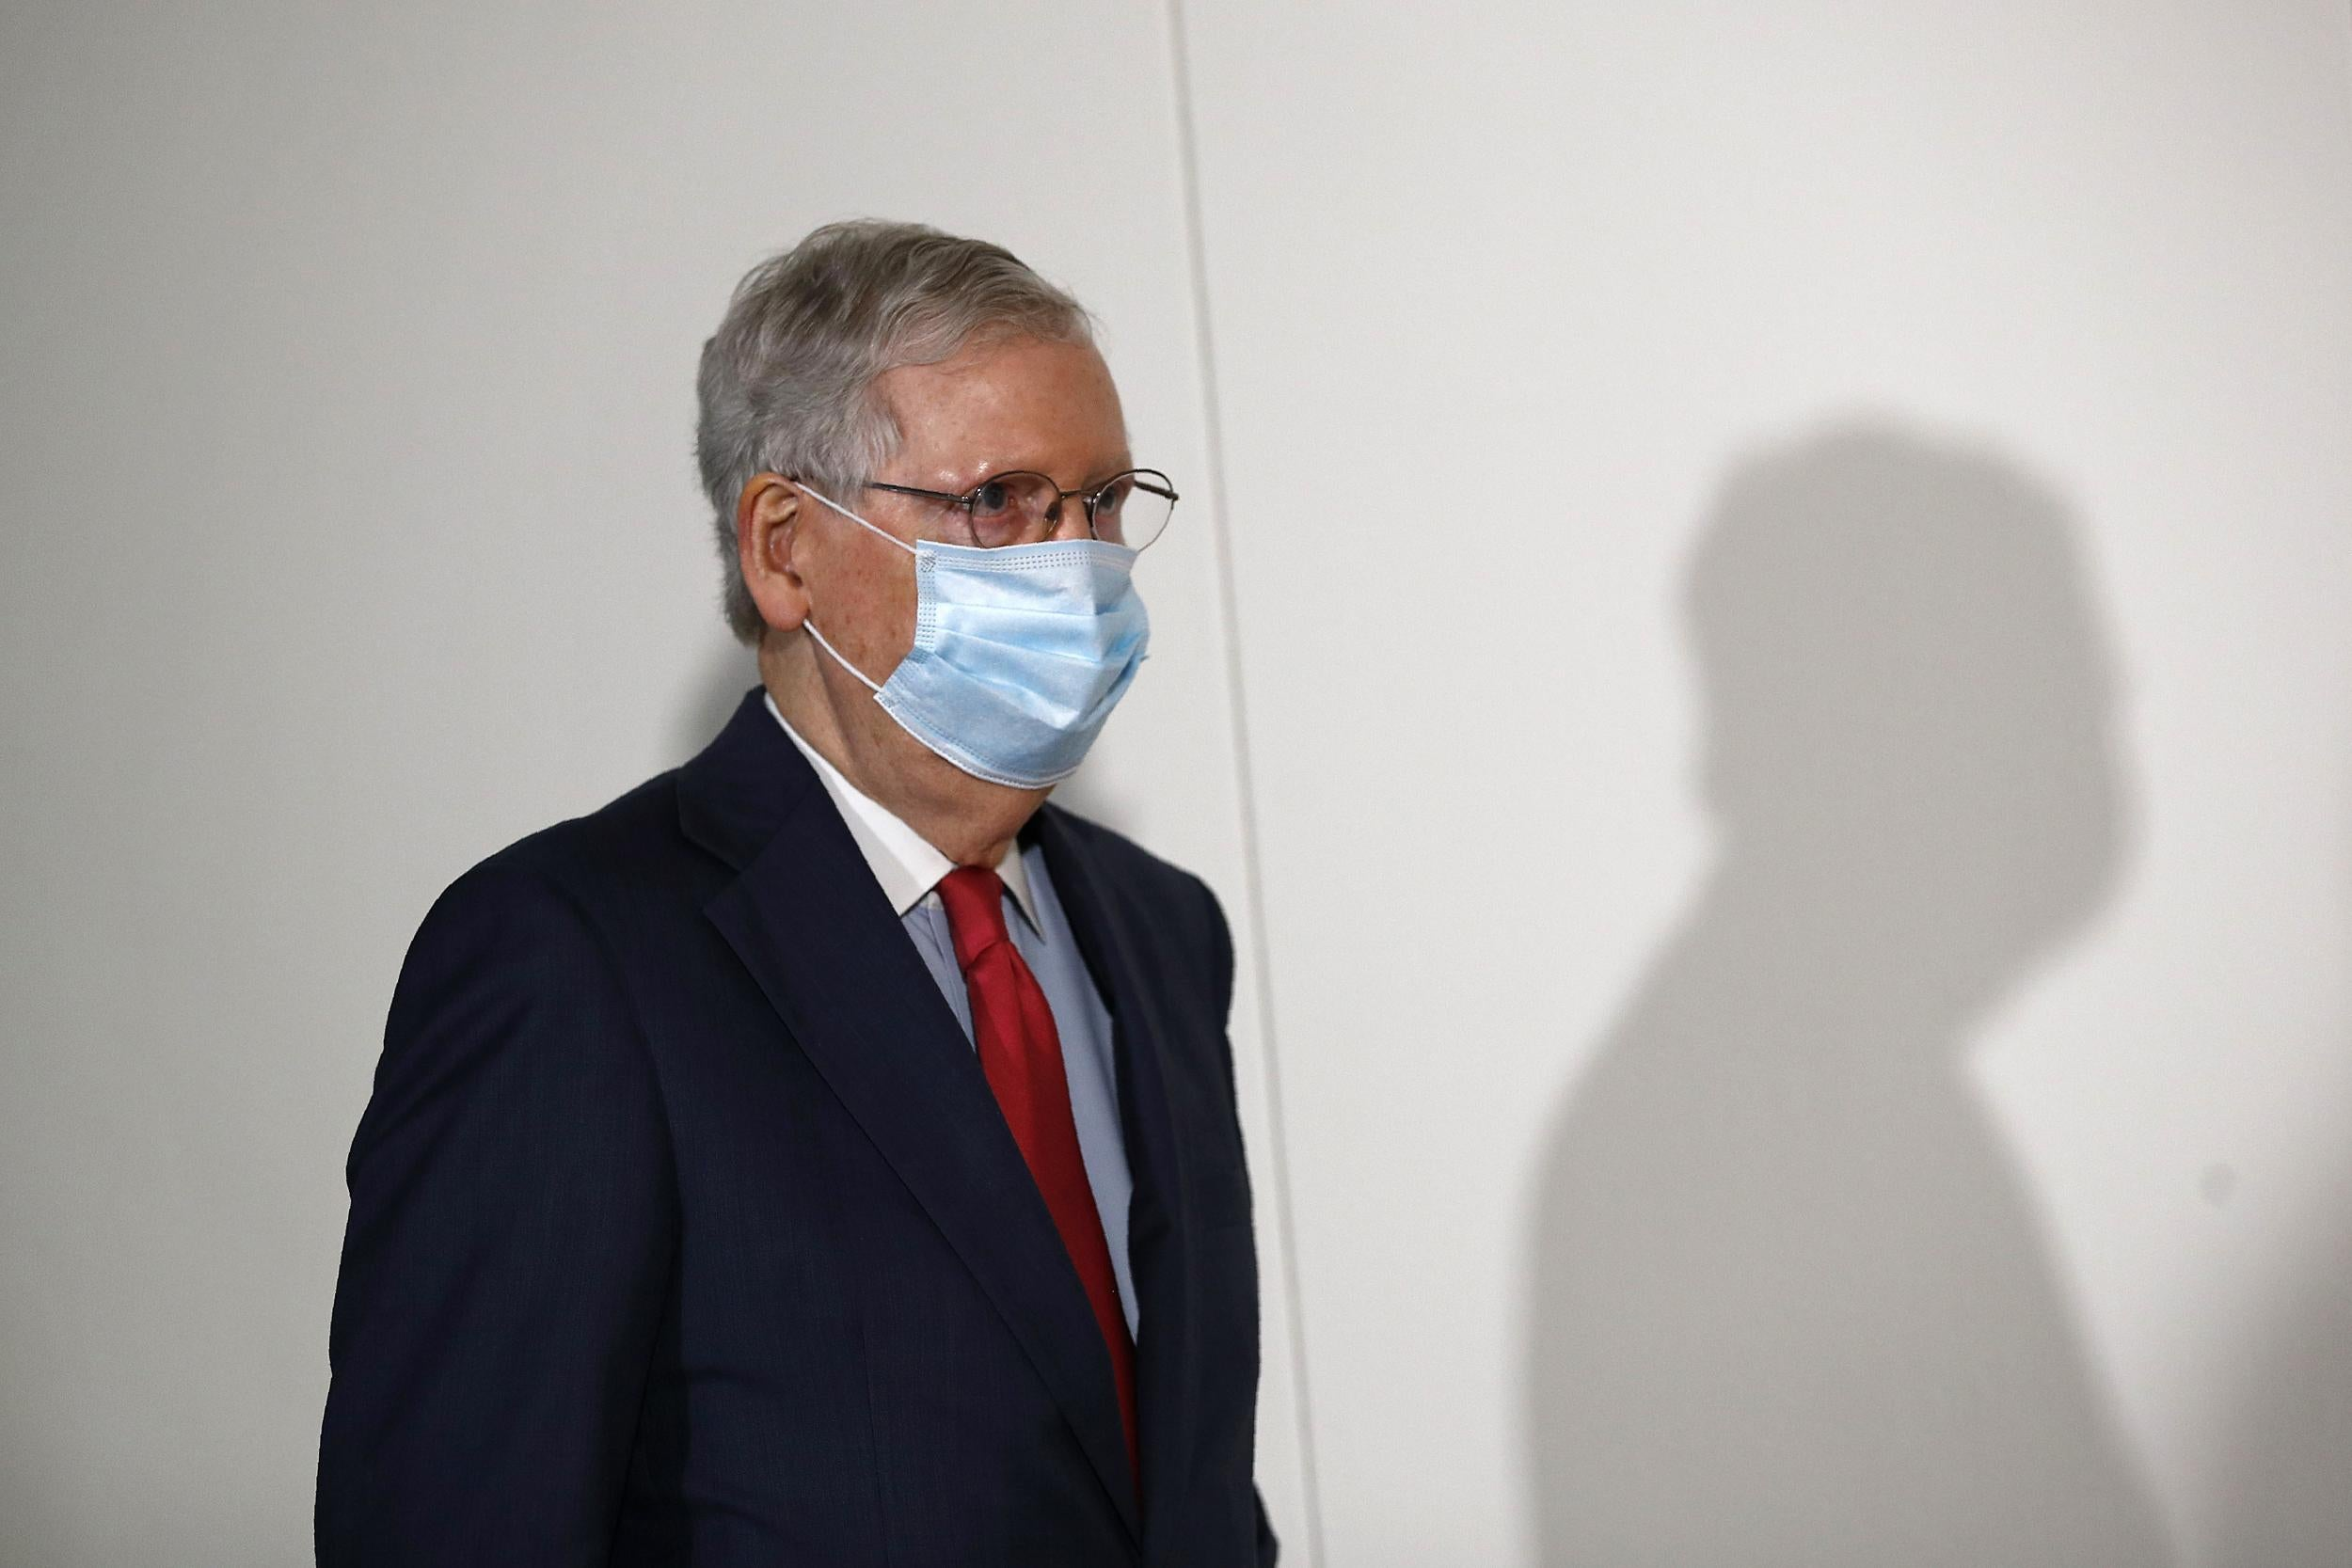 'There should be no stigma': Mitch McConnell stresses importance of wearing a mask in public